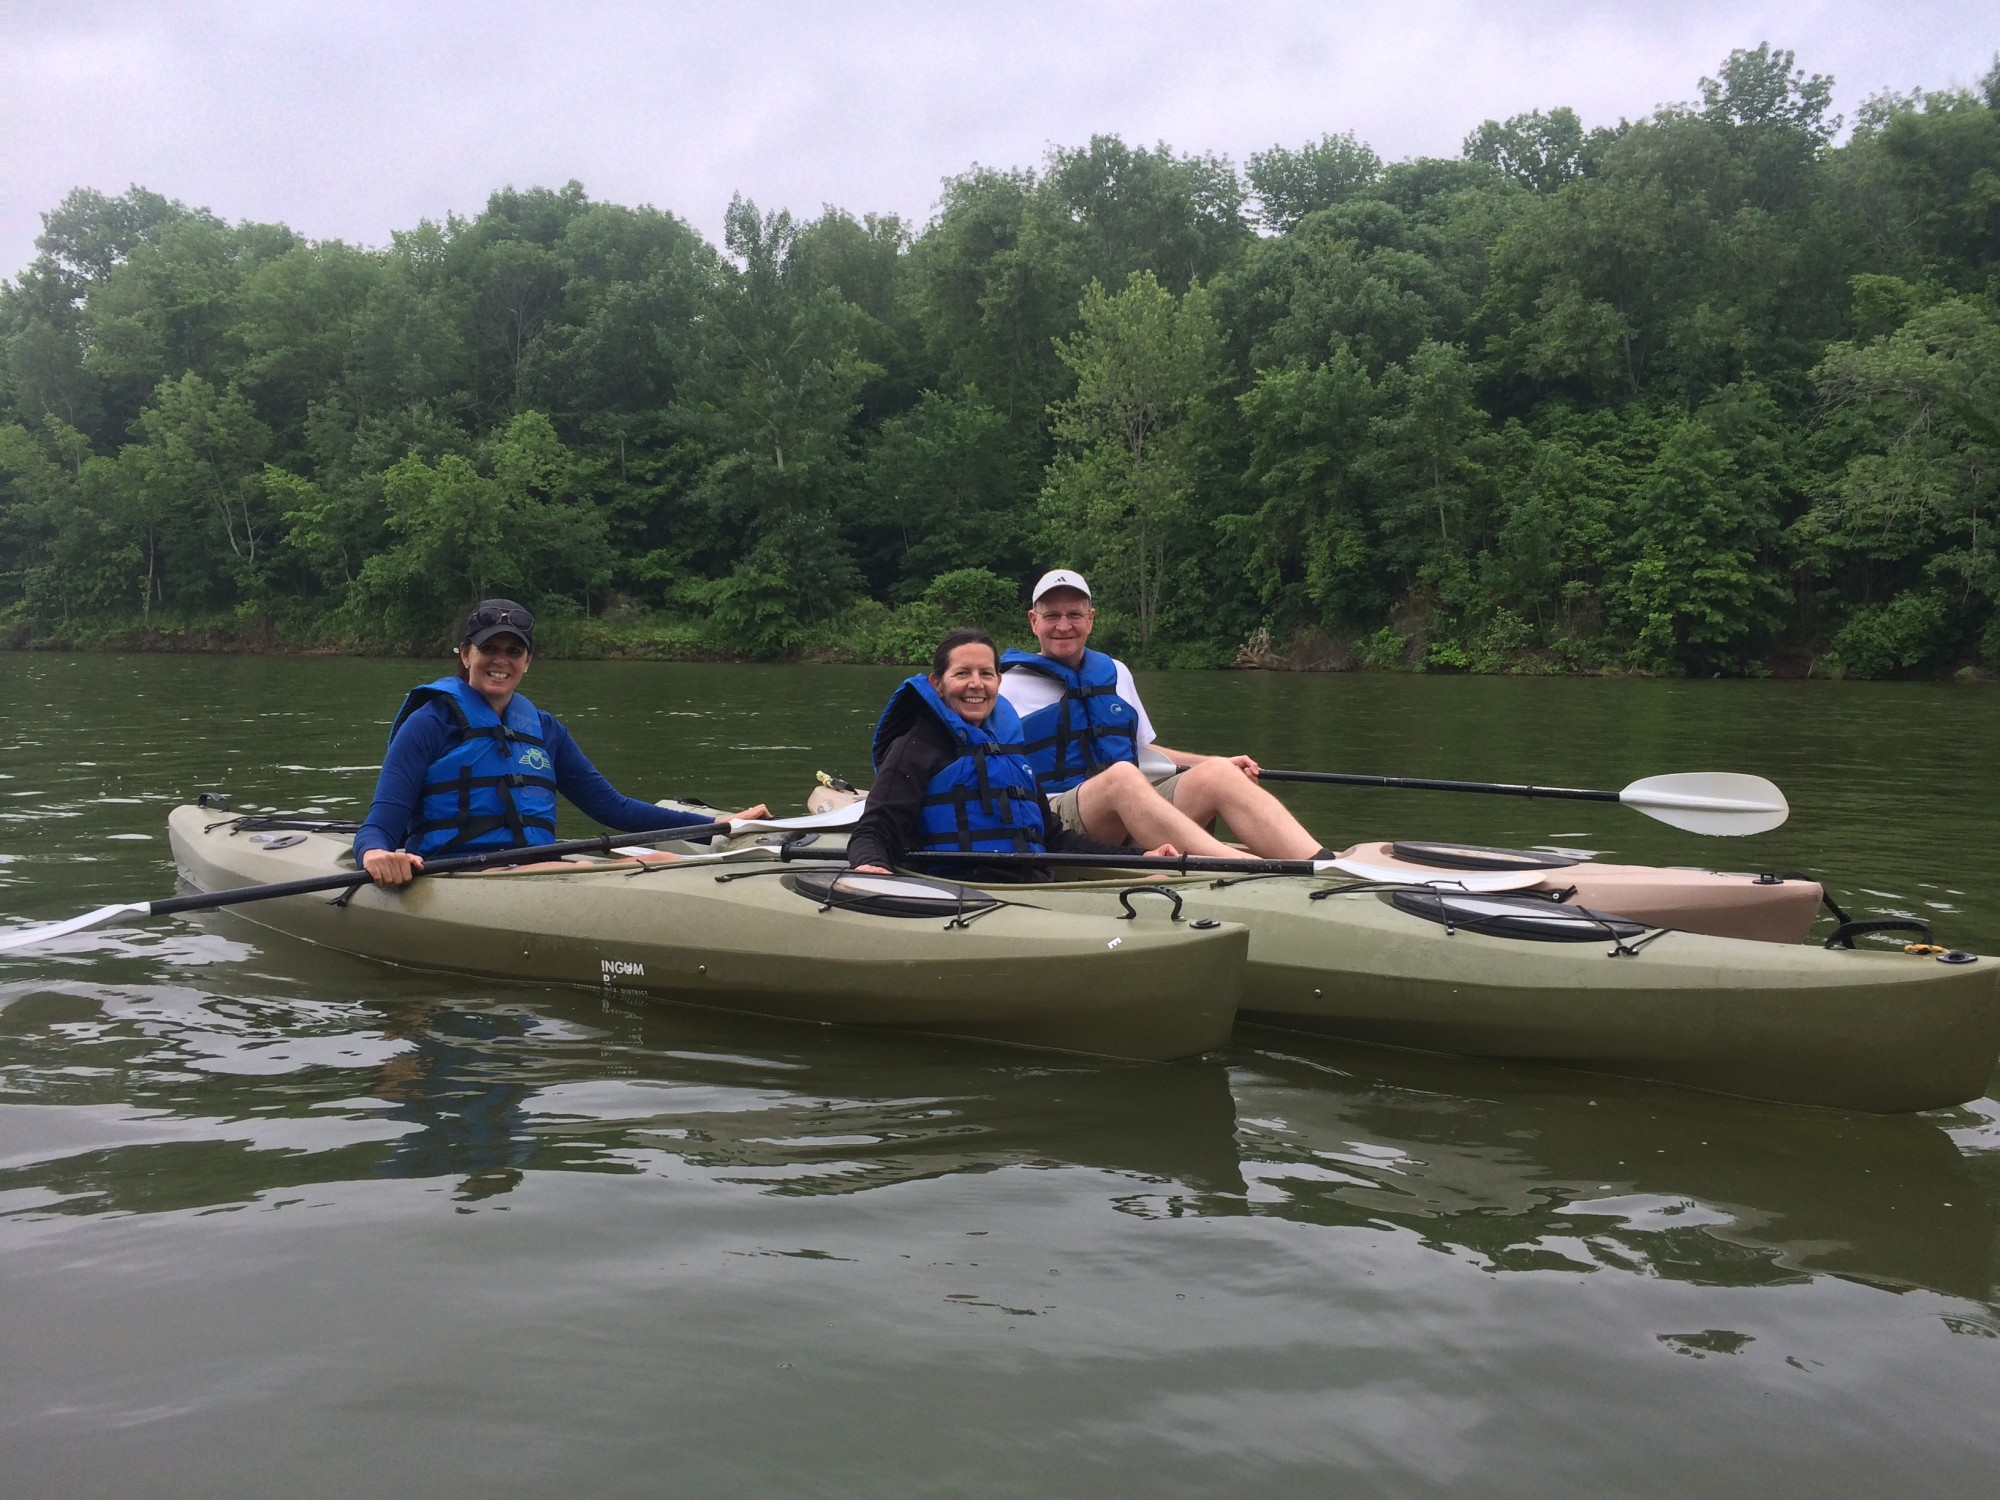 Registration Now Open for Guided Kayak Events at Tappan Lake!